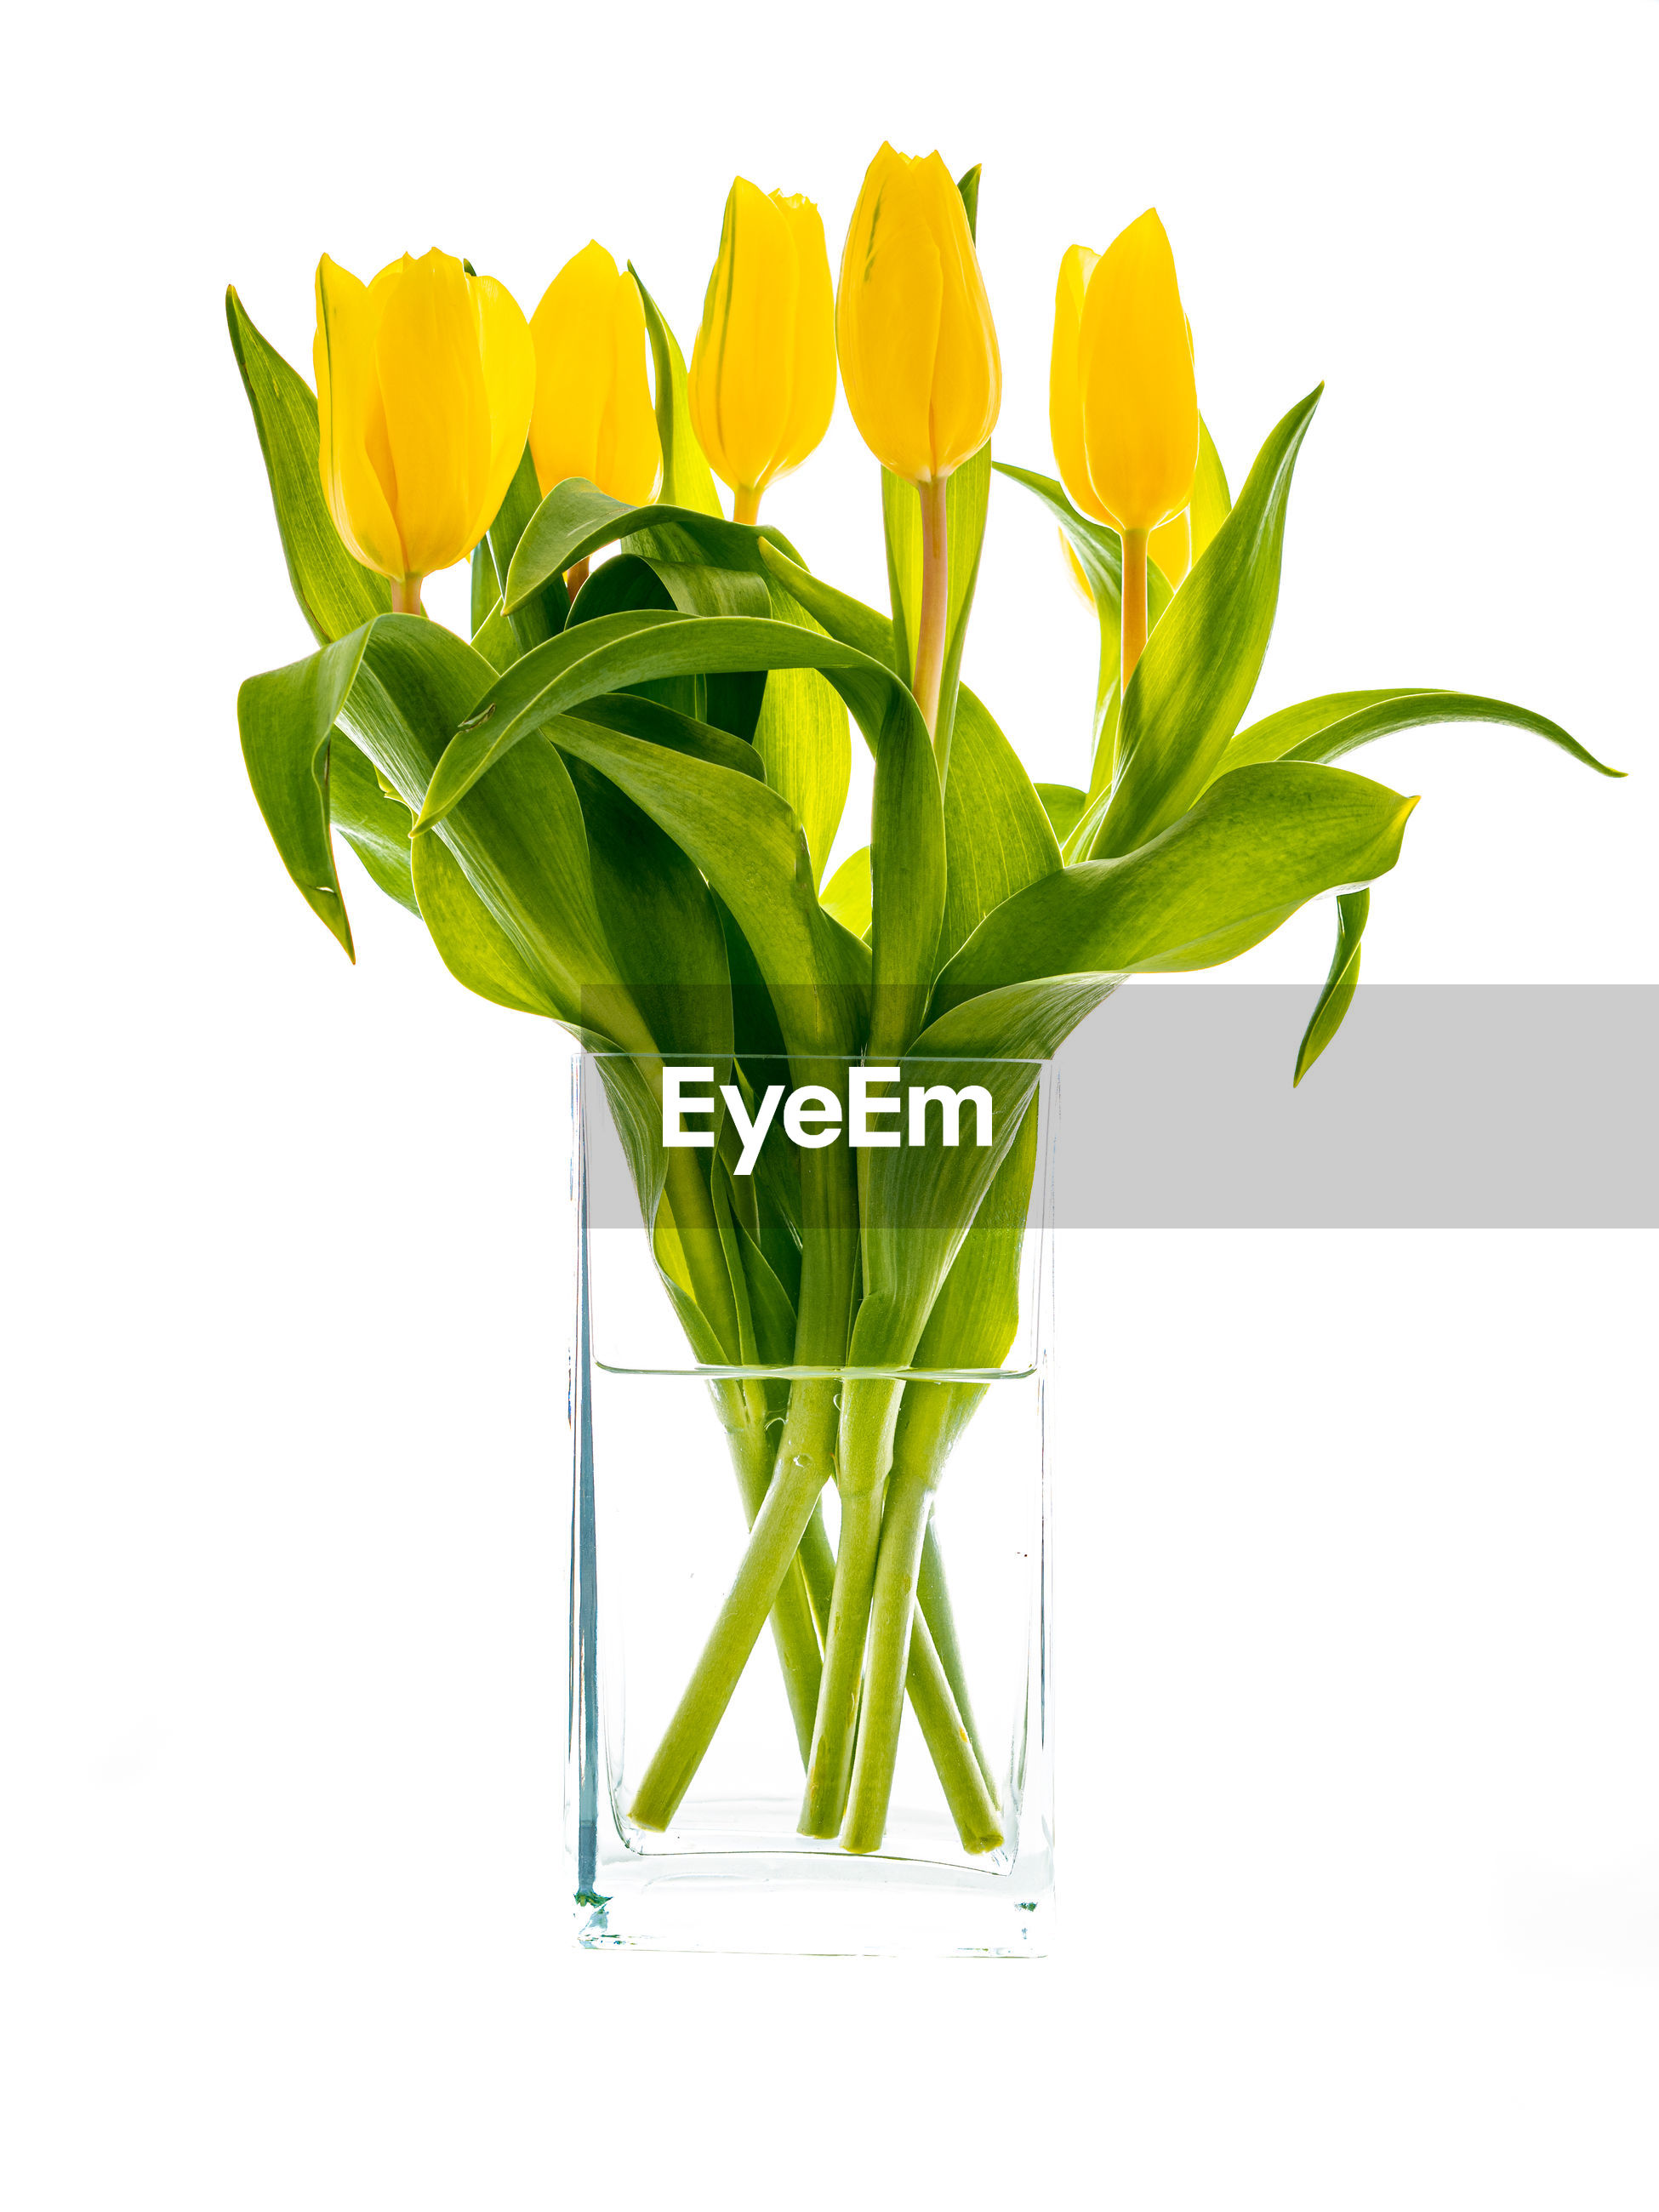 CLOSE-UP OF GREEN PLANT IN VASE